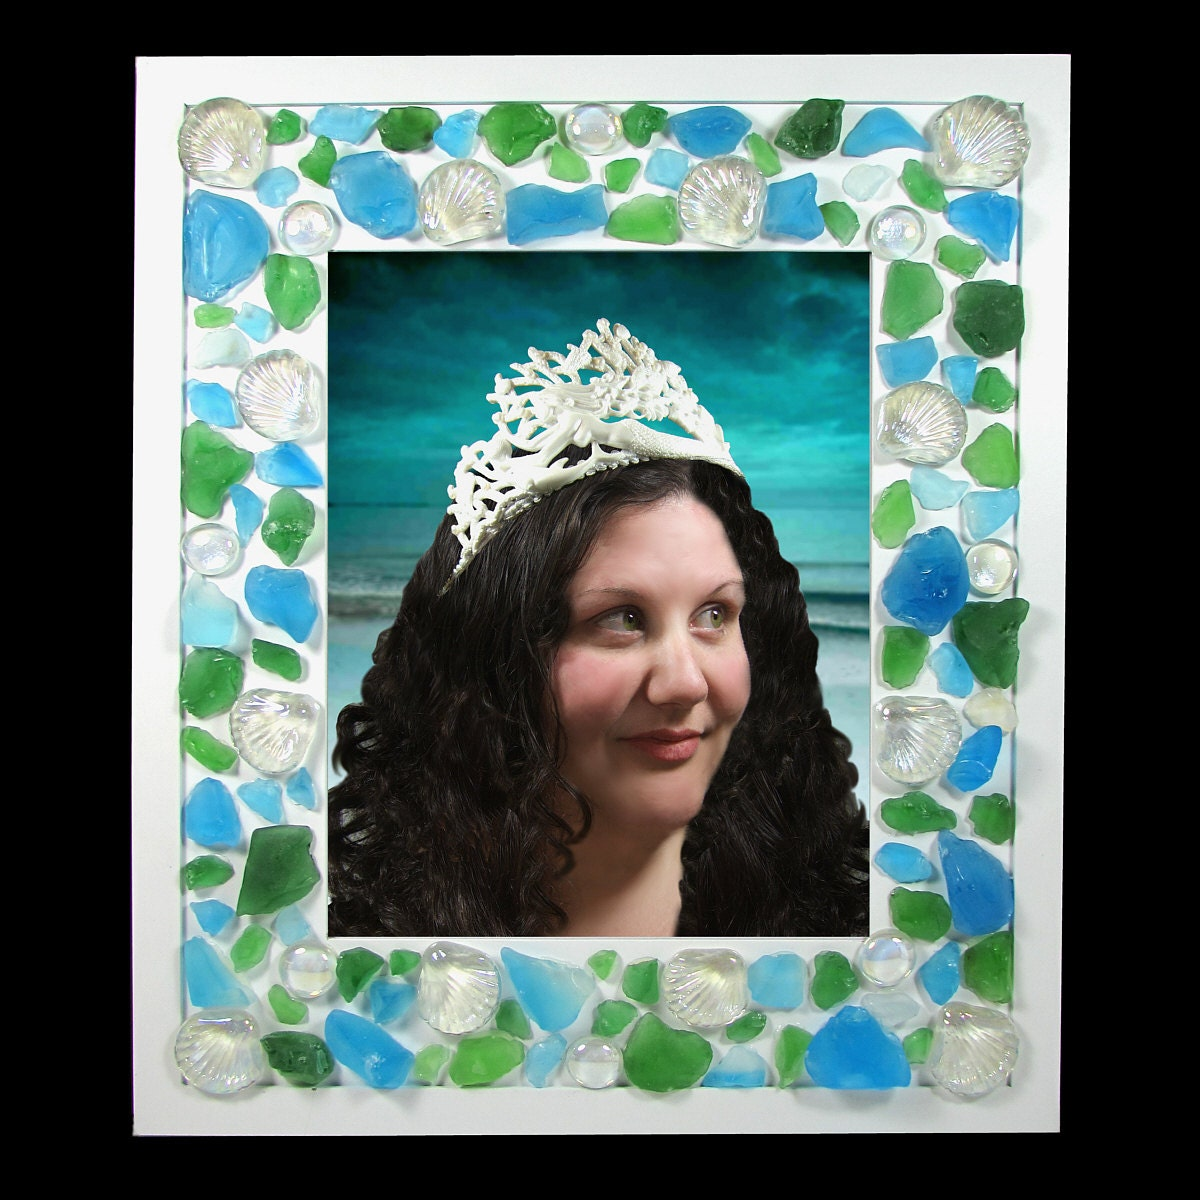 mermaid sea glass picture photo frame 8x10 or 5x7